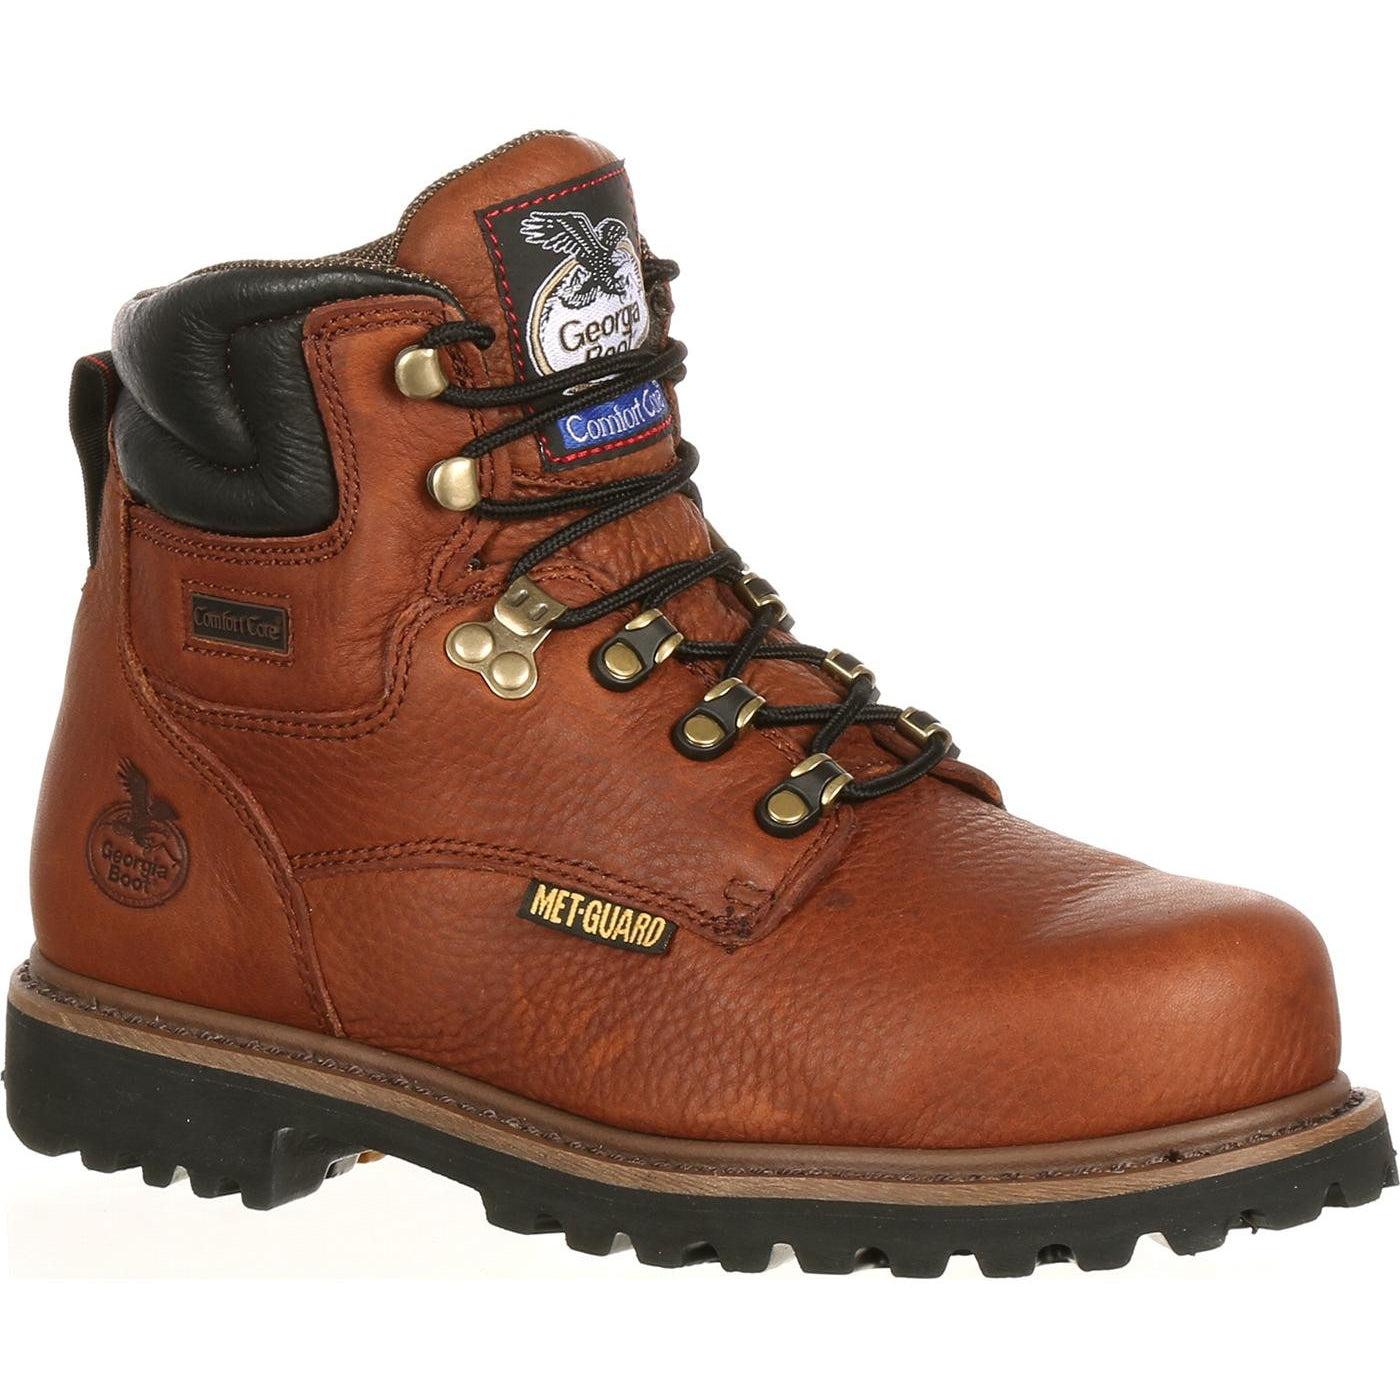 80e92d8712f Men's Georgia Boots Hammer Internal Metatarsal Steel Toe Work Boots